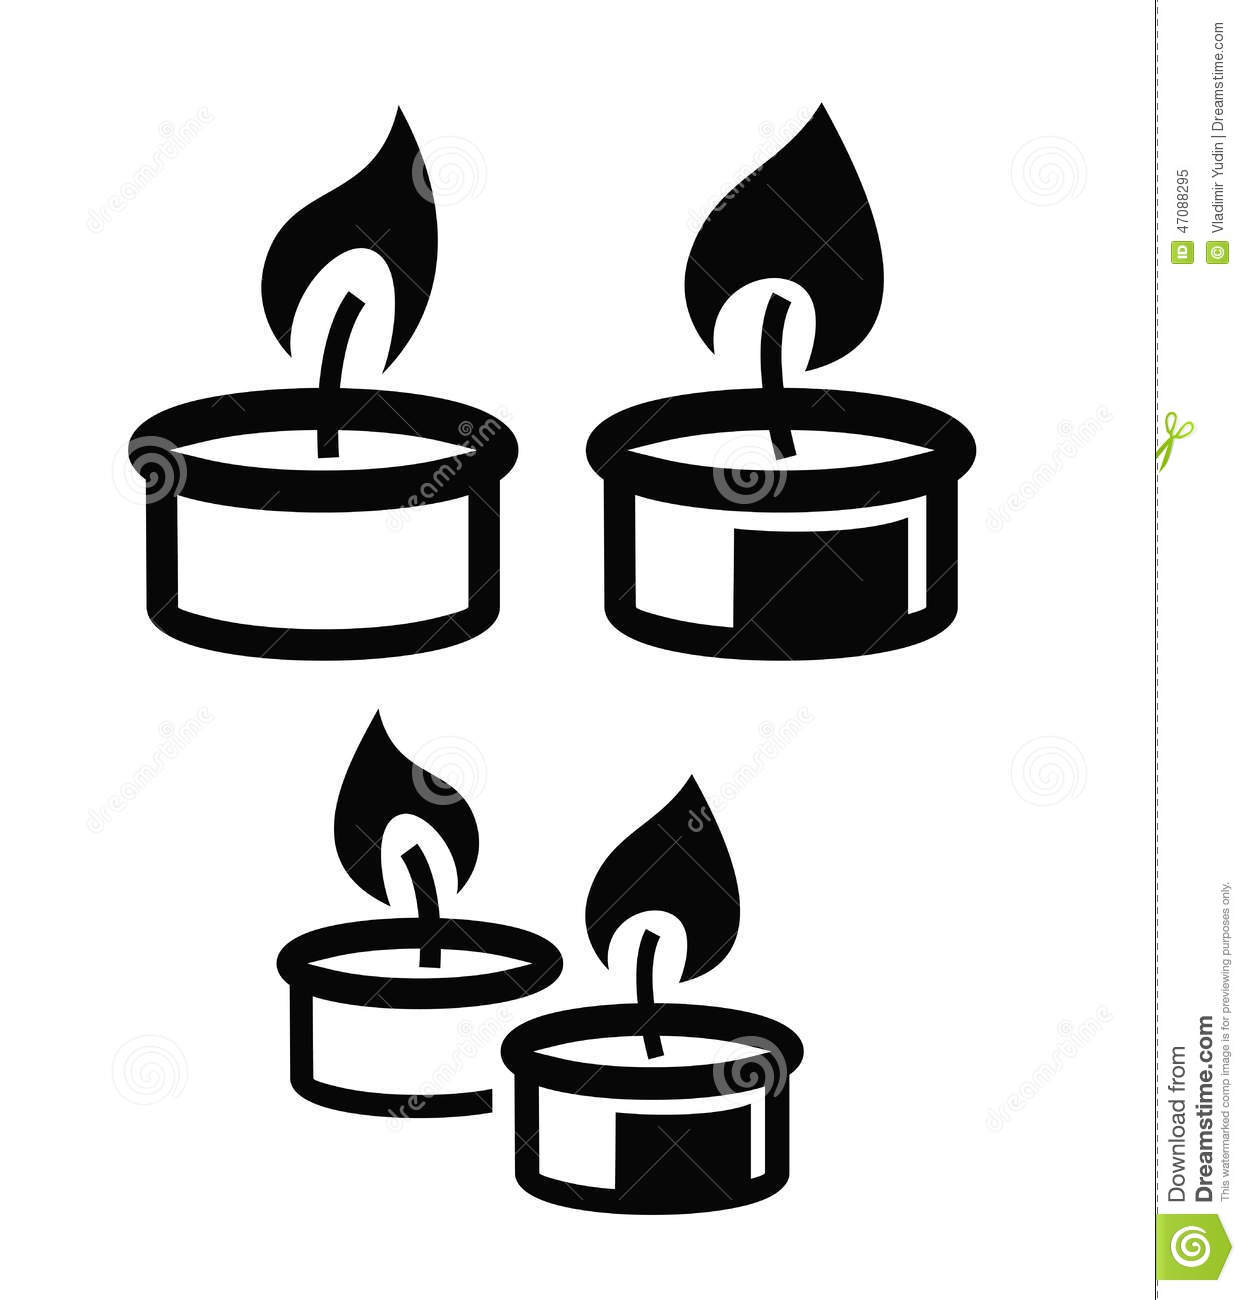 Candle Icon Stock Vector - Image: 47088295